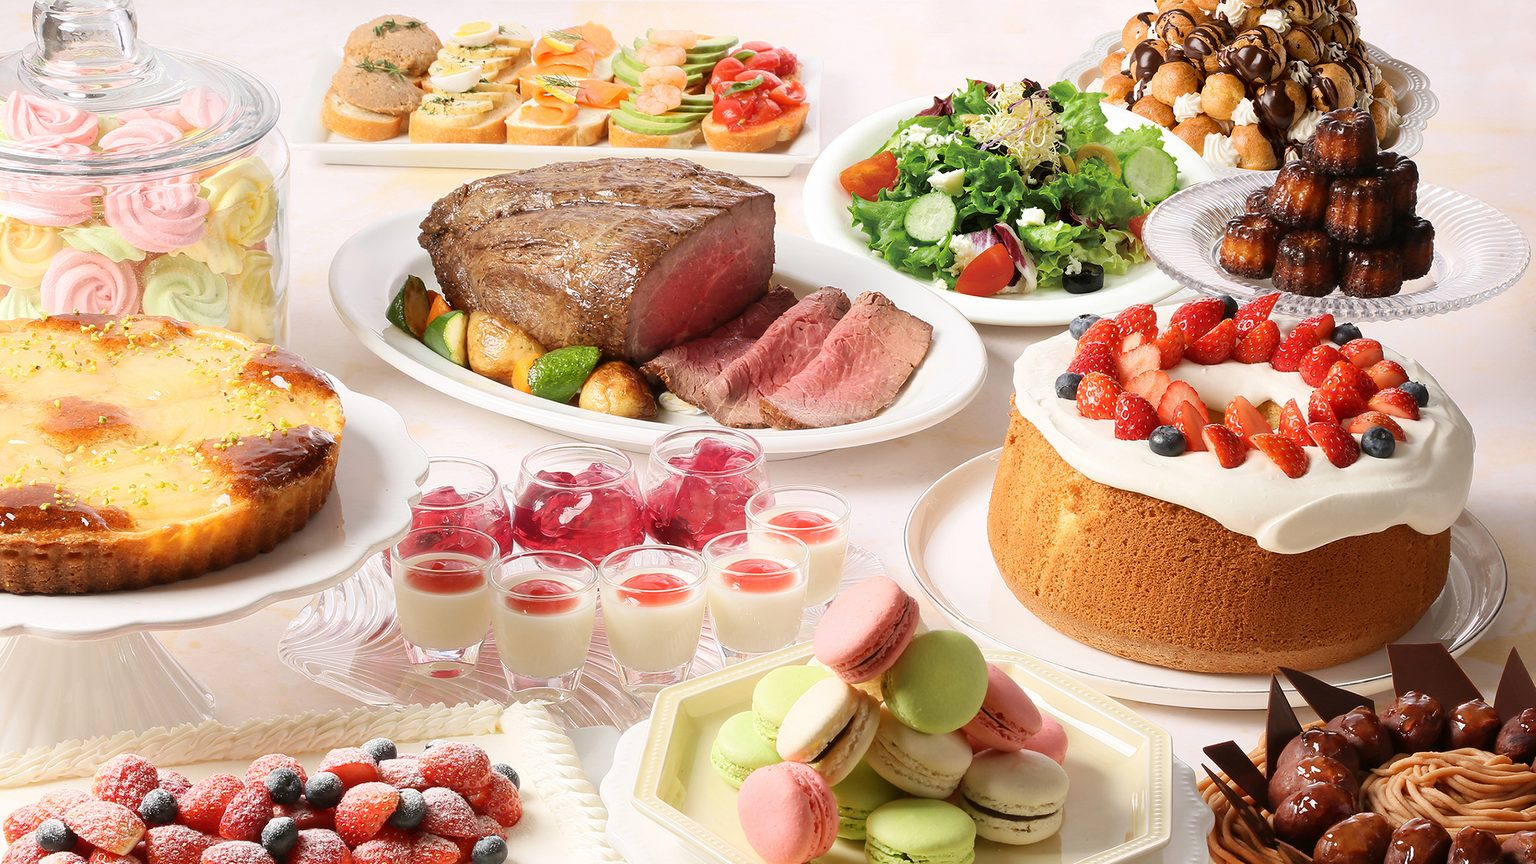 Meal, Food, Confectionery